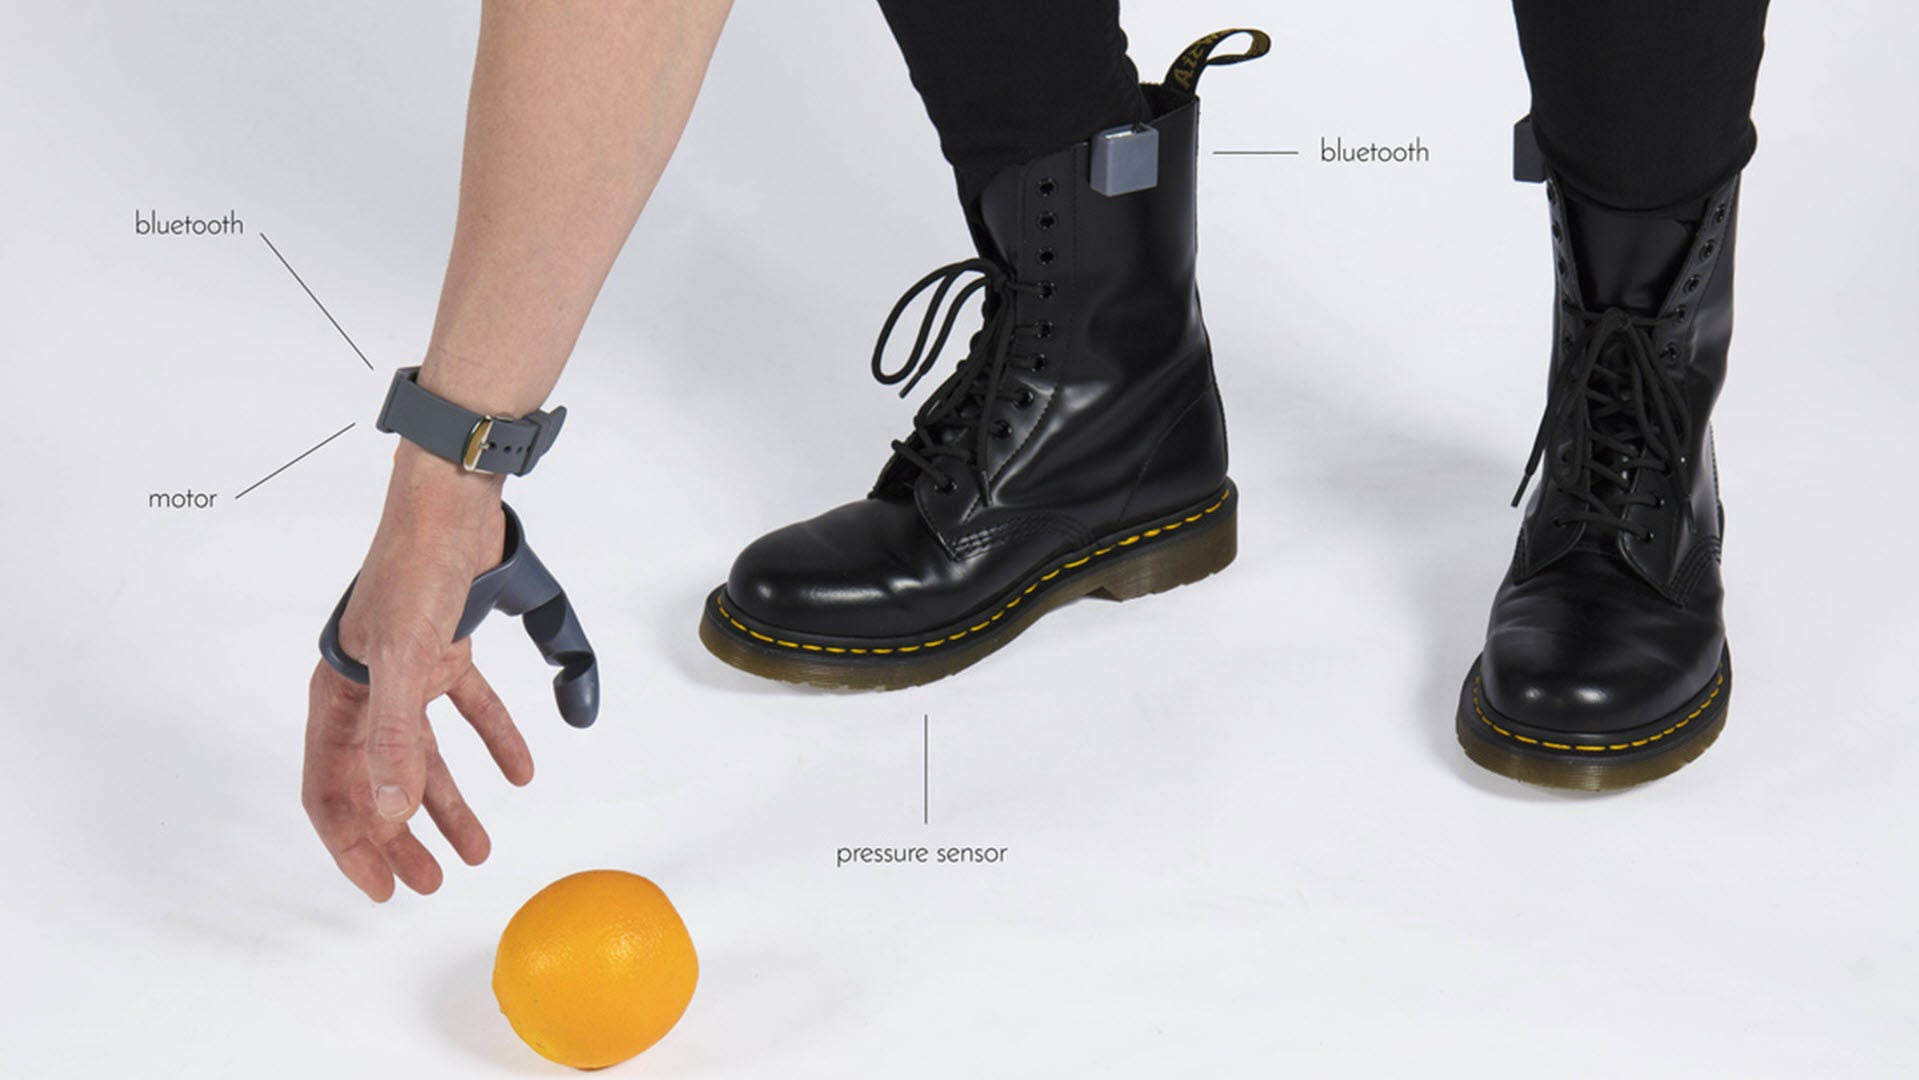 A man reaching down for an orange with two thumbs, and wireless sensors connected to his boots.